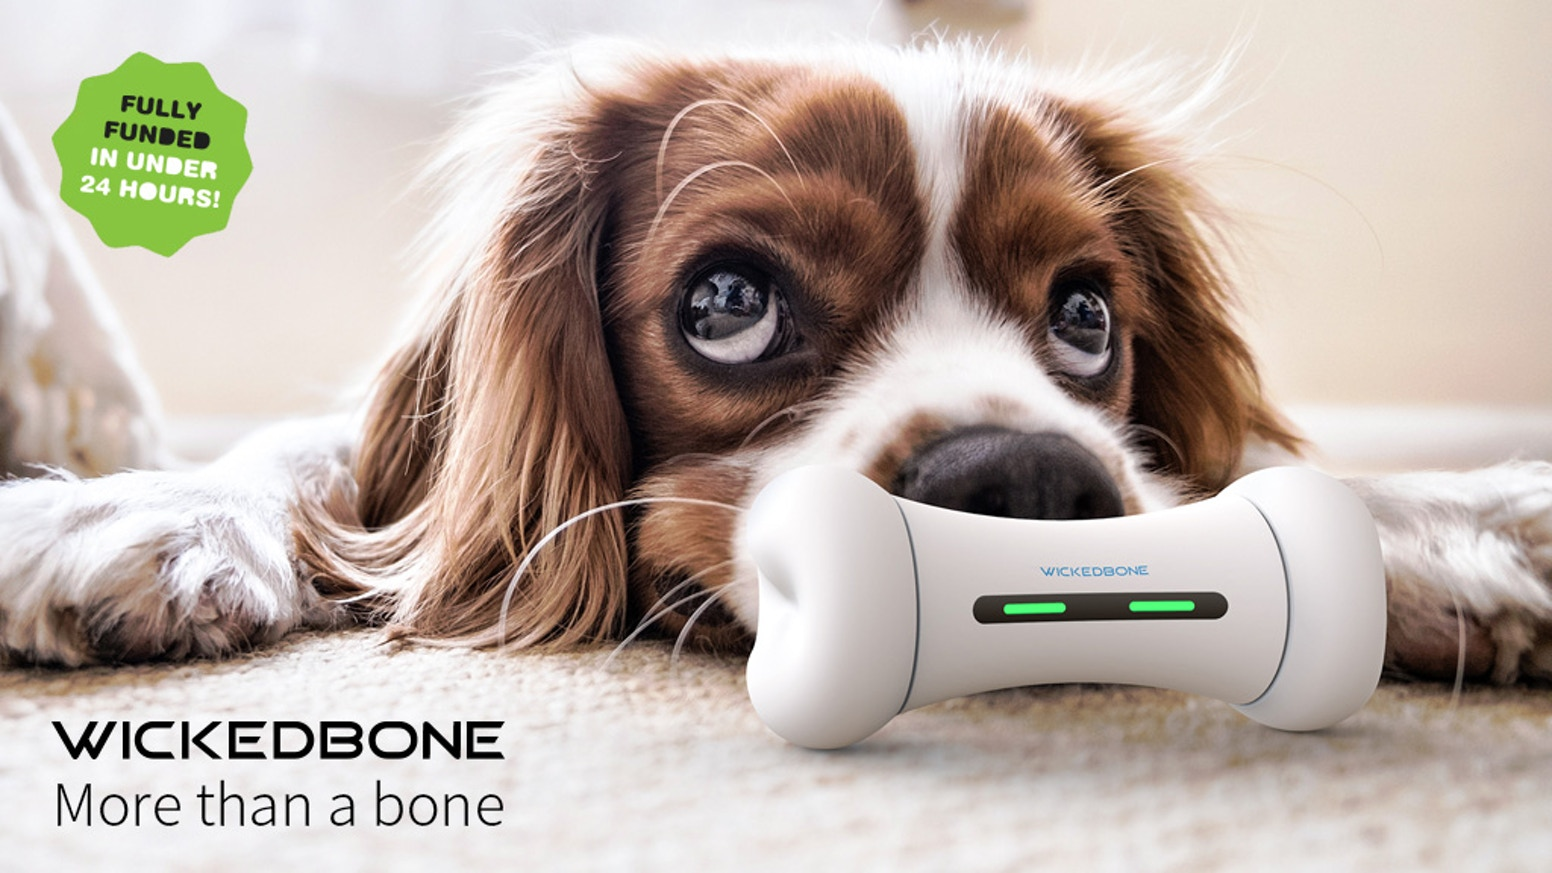 Puppy Toys For 10 And Up : Wickedbone world s first smart interactive dog toy by